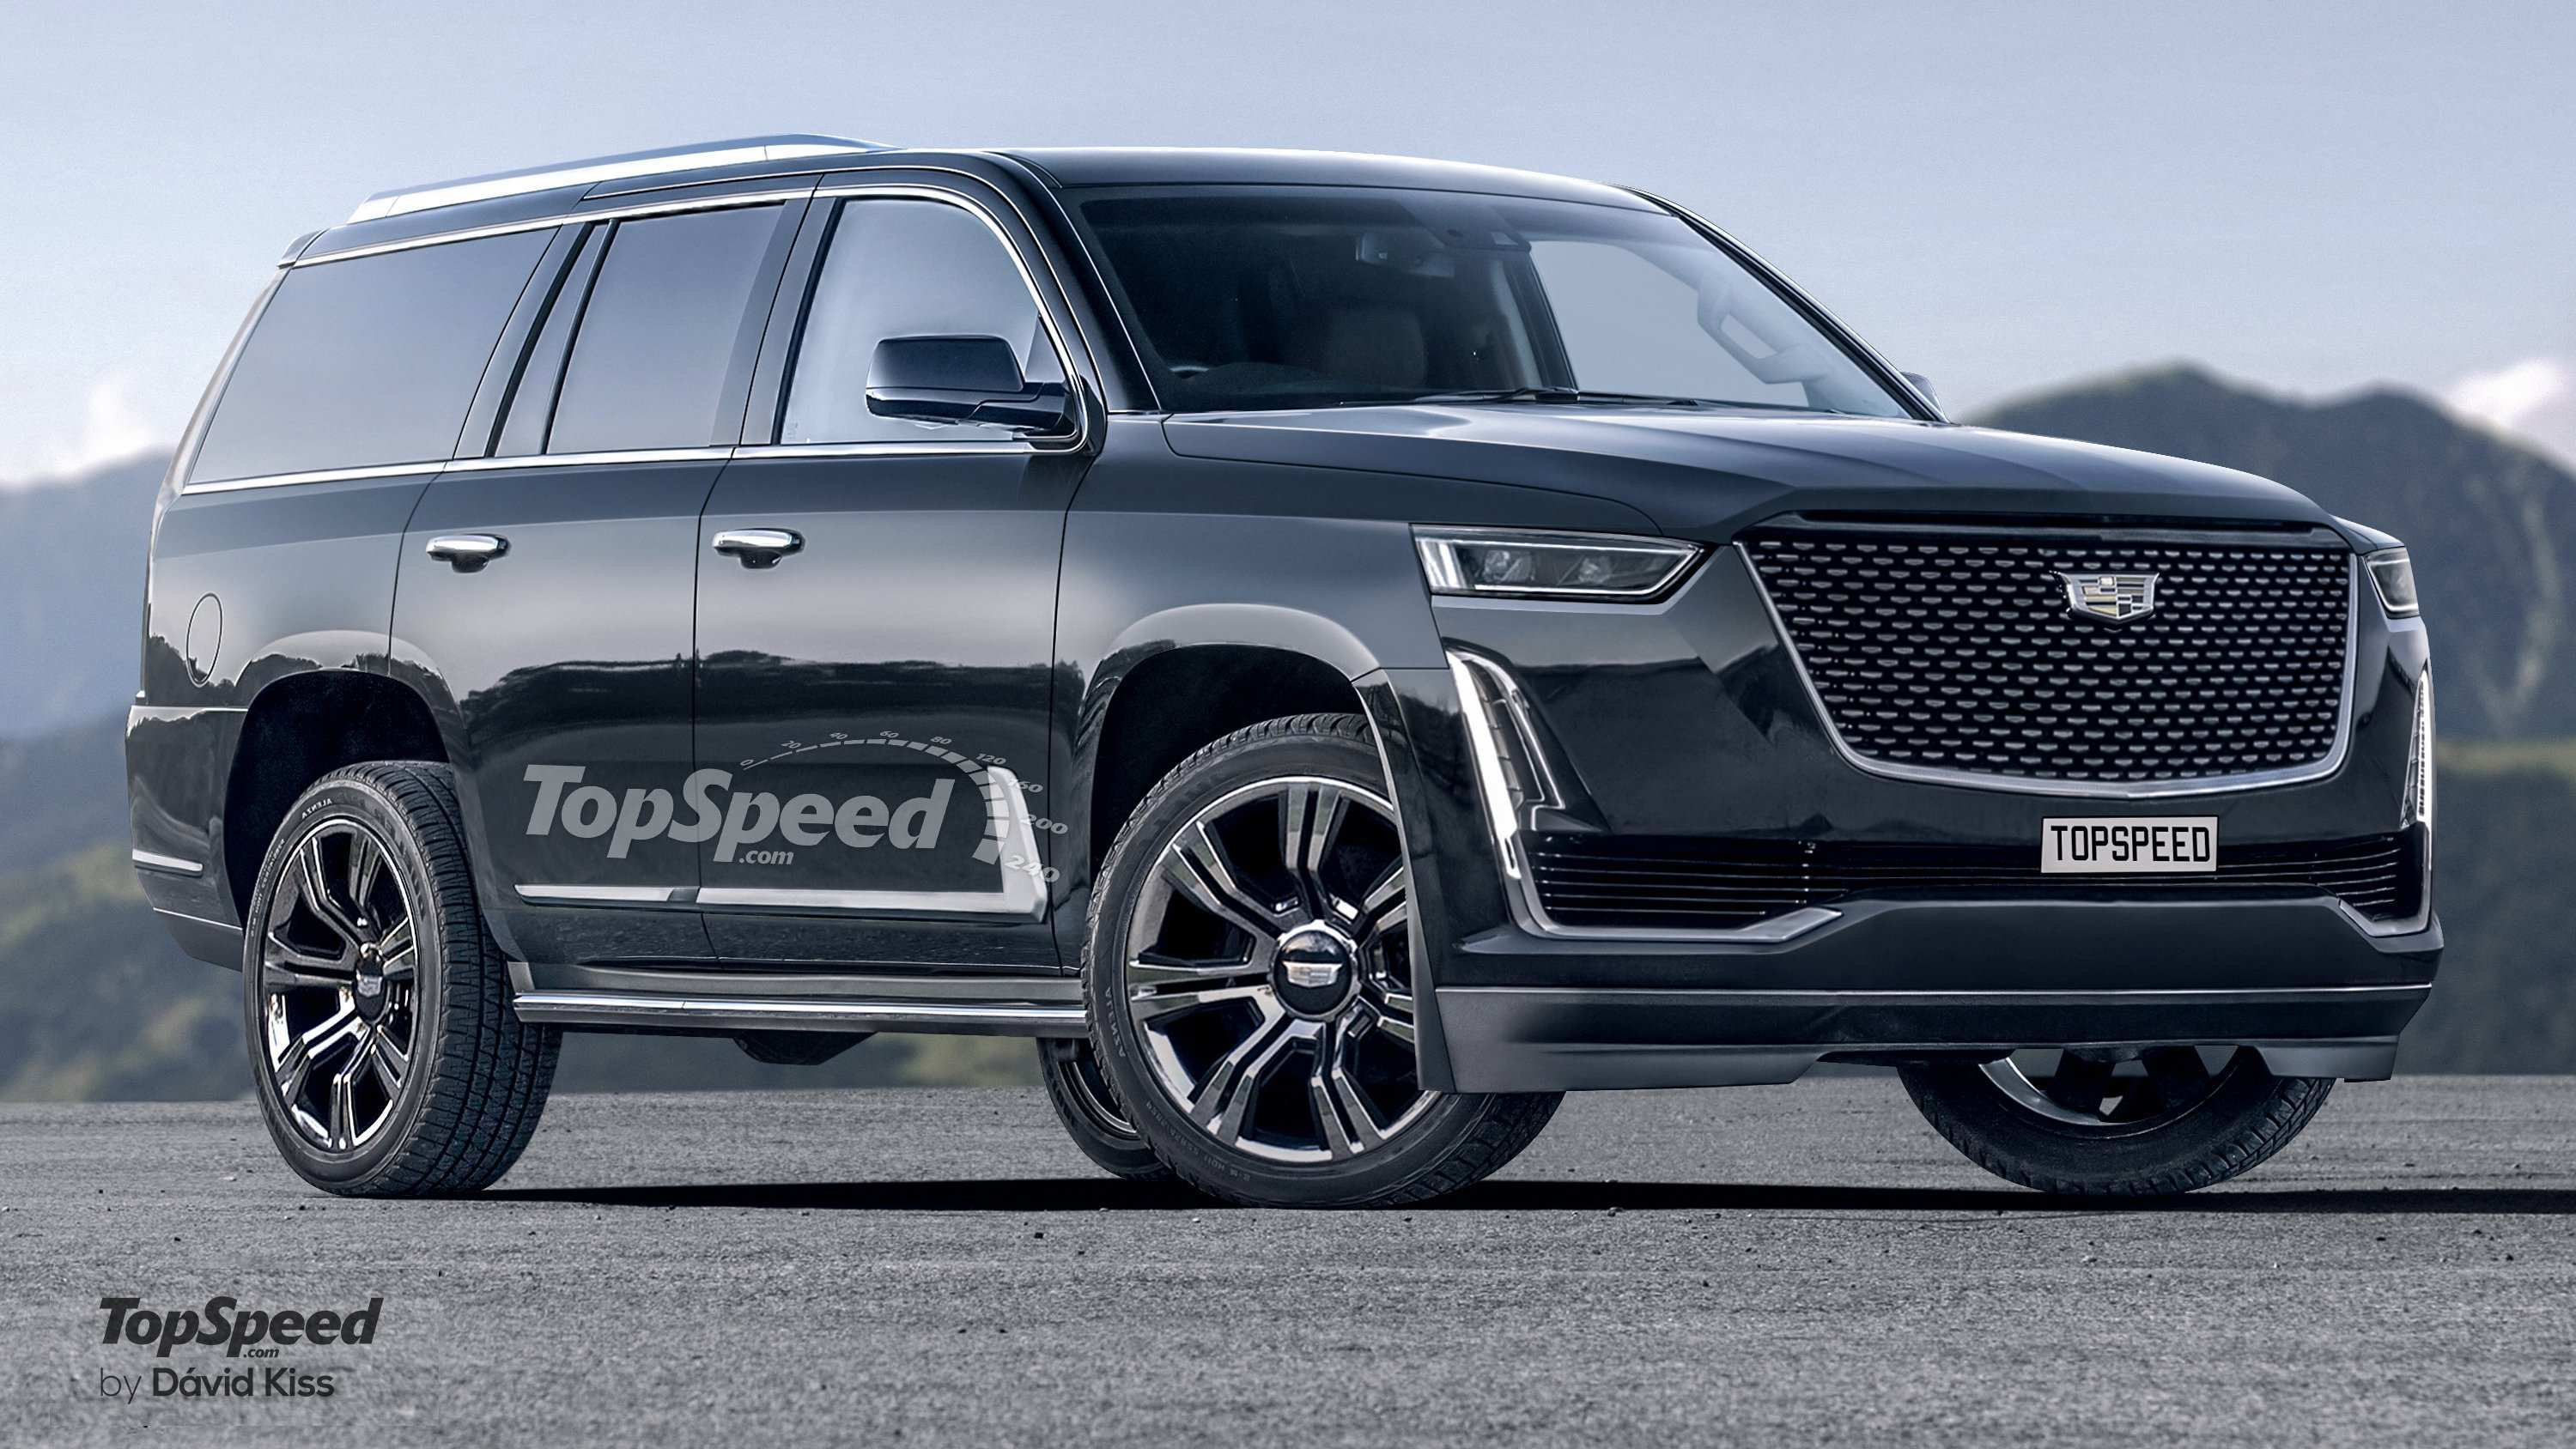 91 The Best 2020 Cadillac Escalade Vsport Spy Shoot